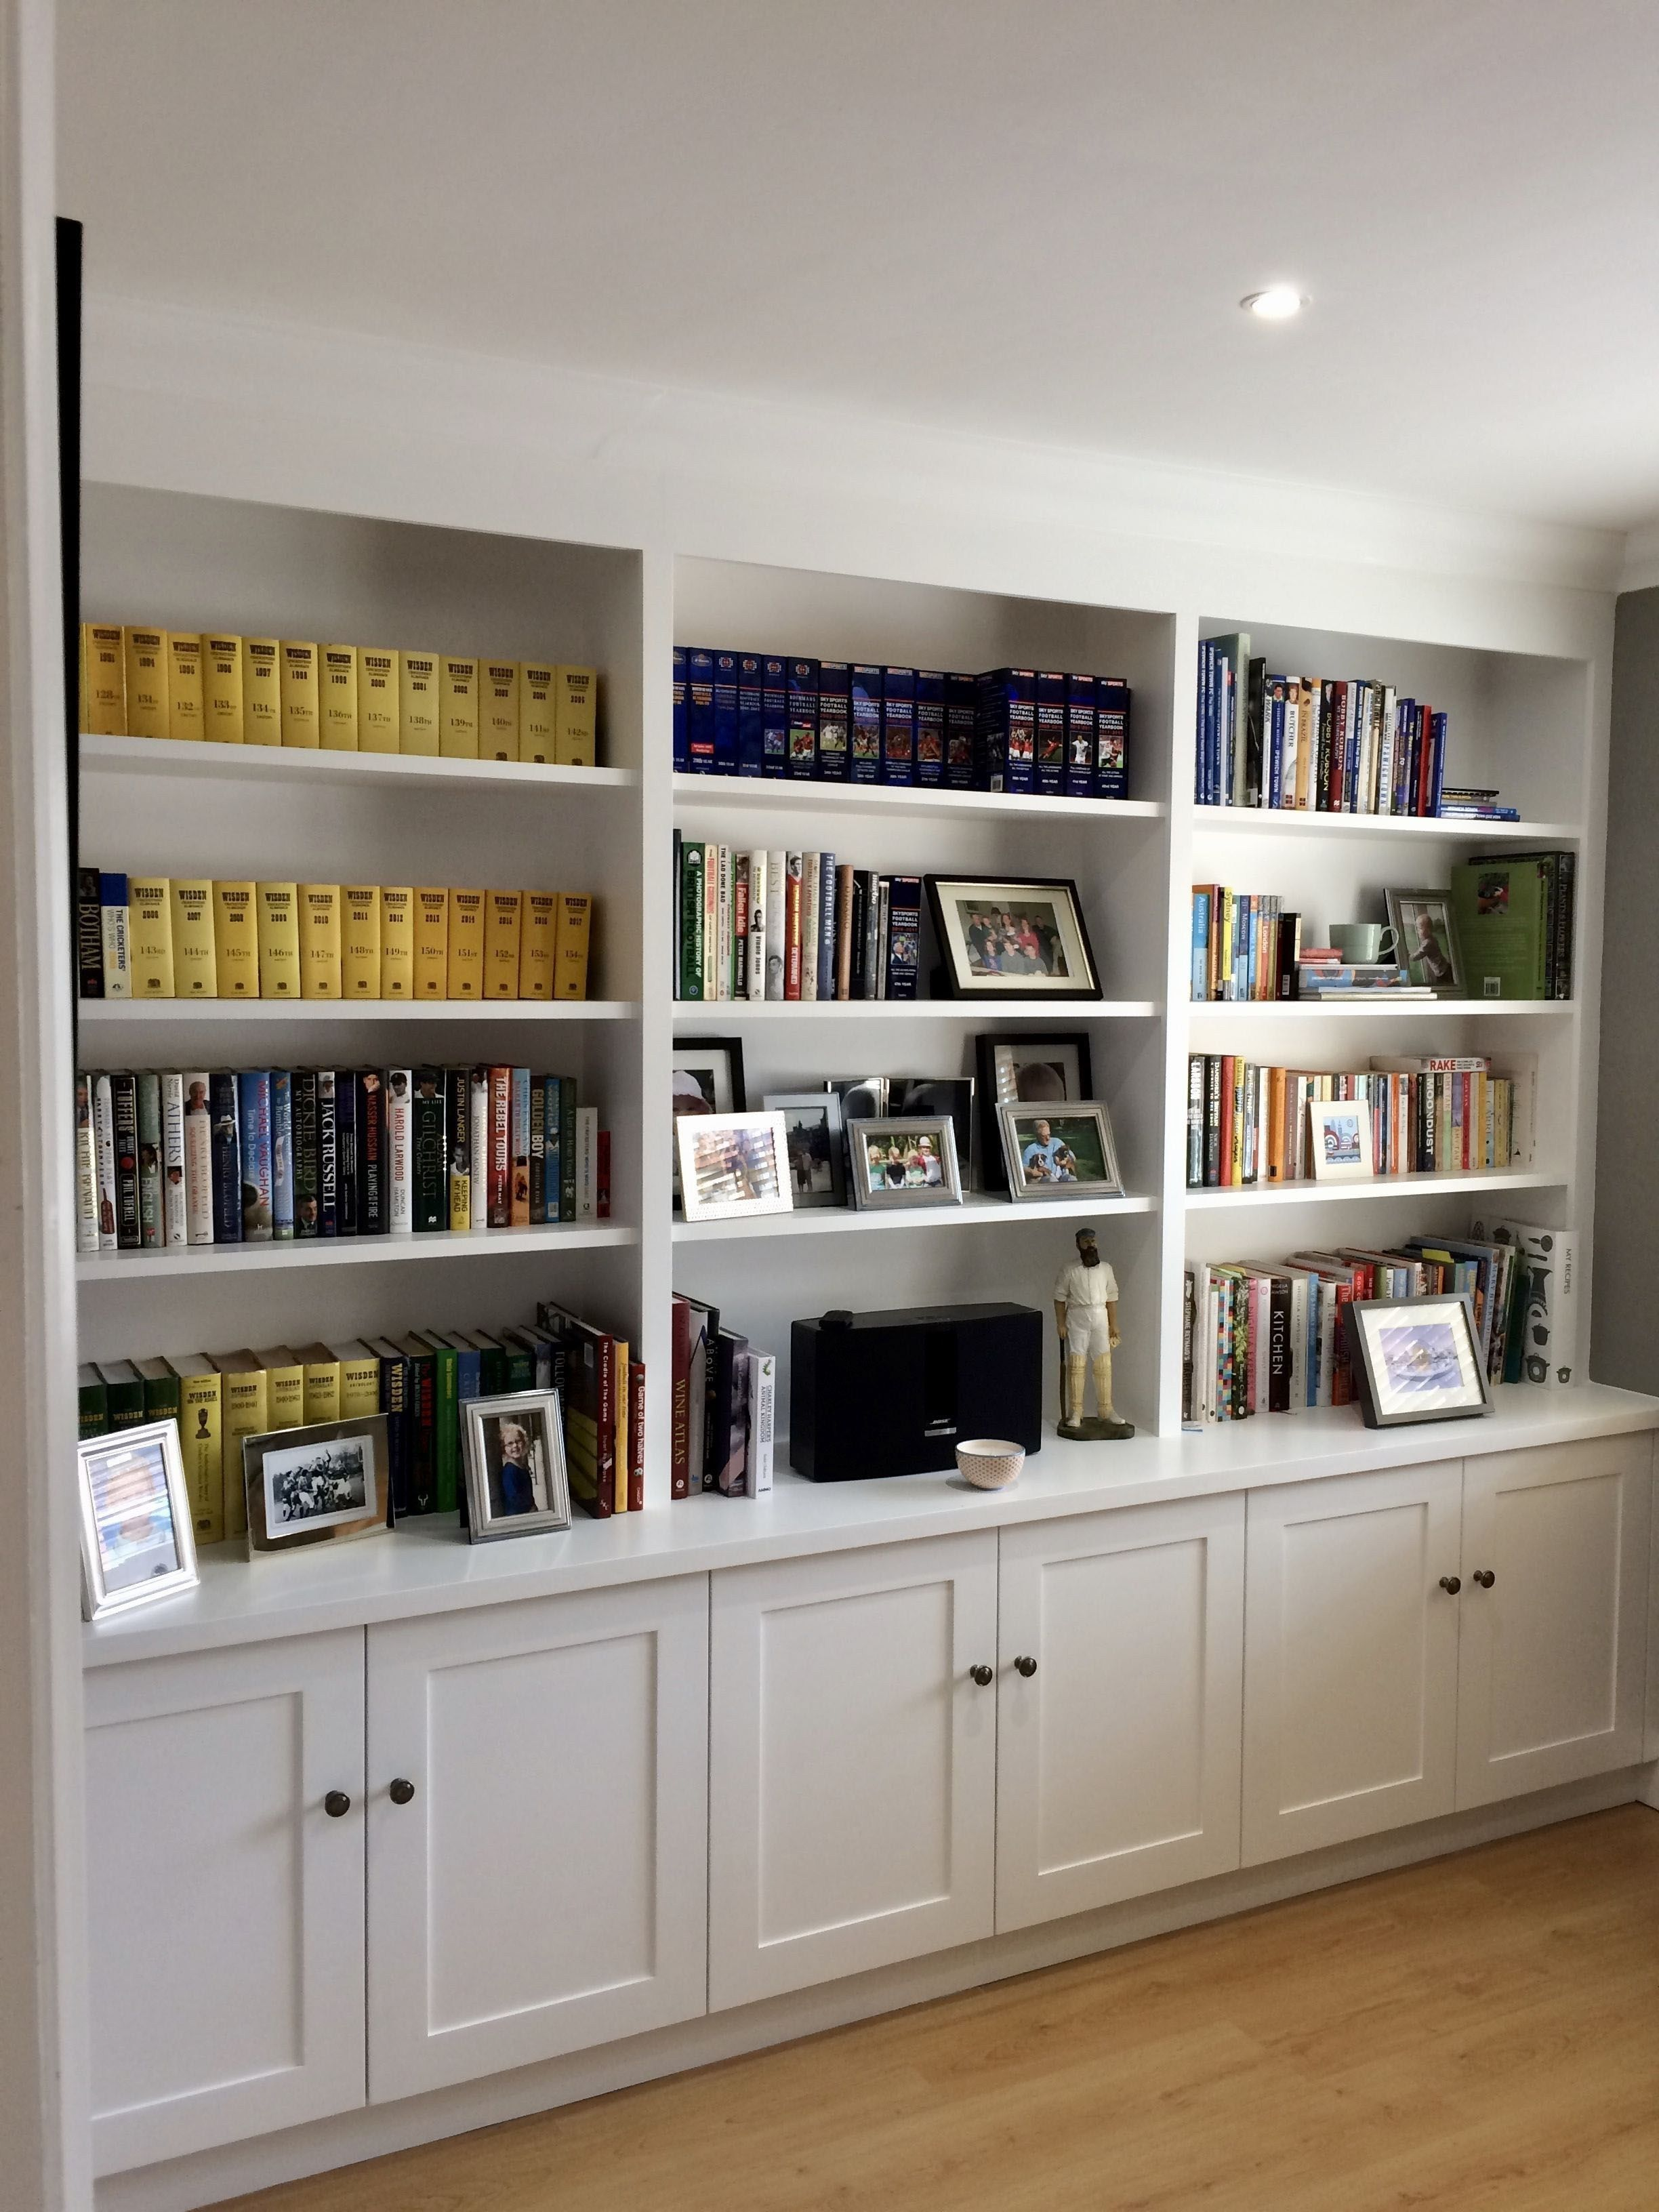 Best Of Built In Office Shelving Design Ideas Built In Shelves Living Room Home Office Shelves Living Room Bookcase